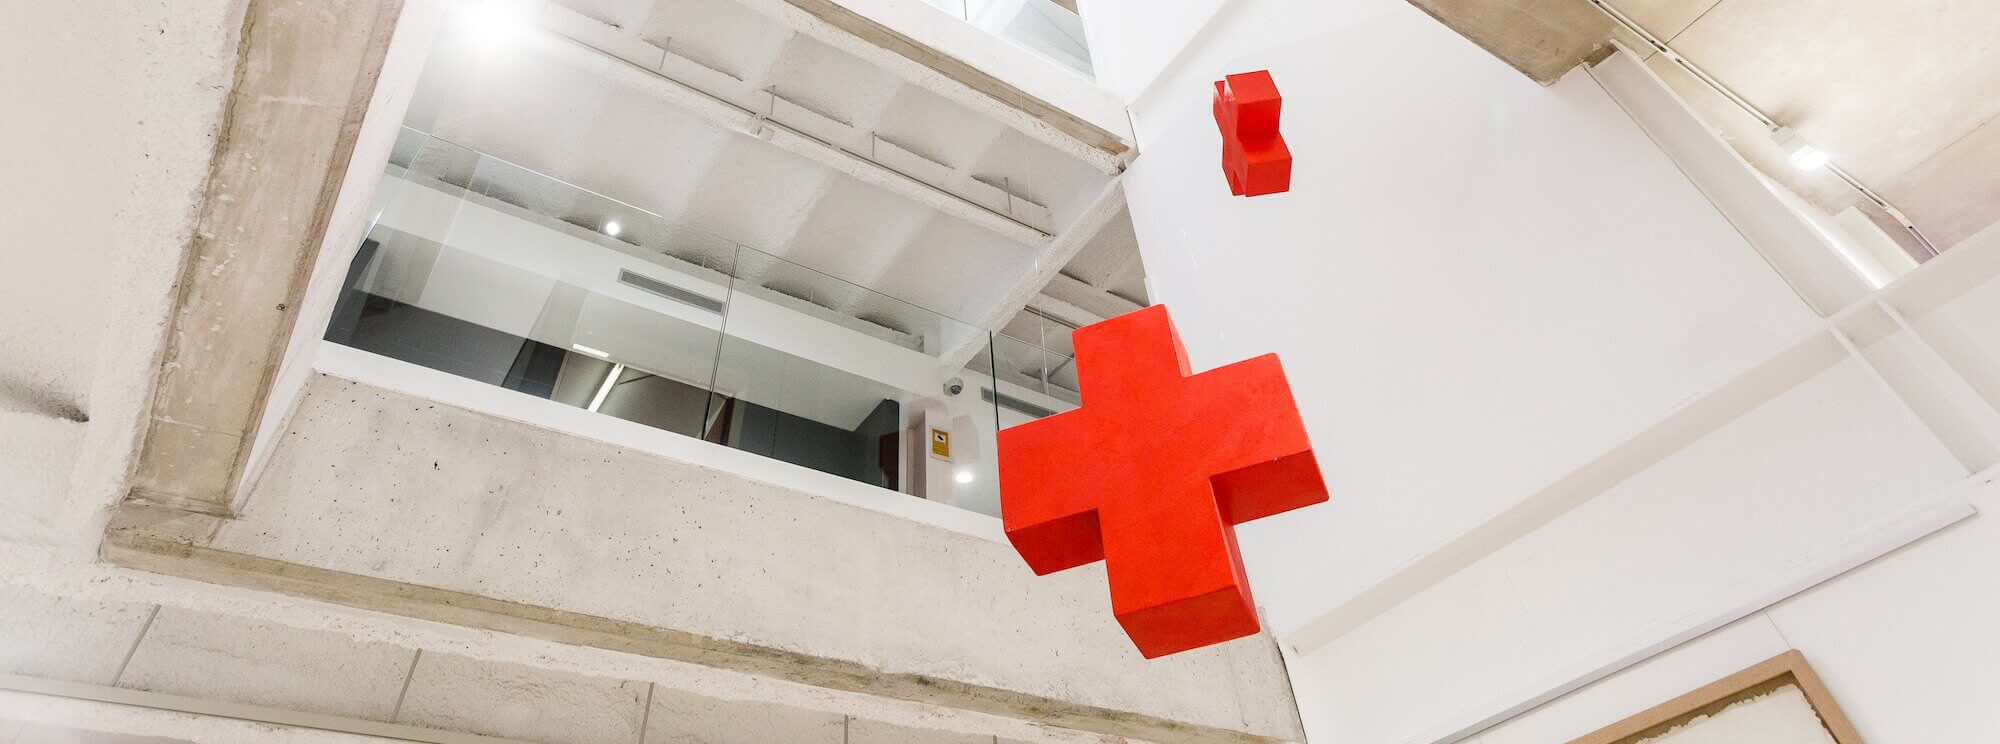 Large open foyer with Red Cross emblem hanging